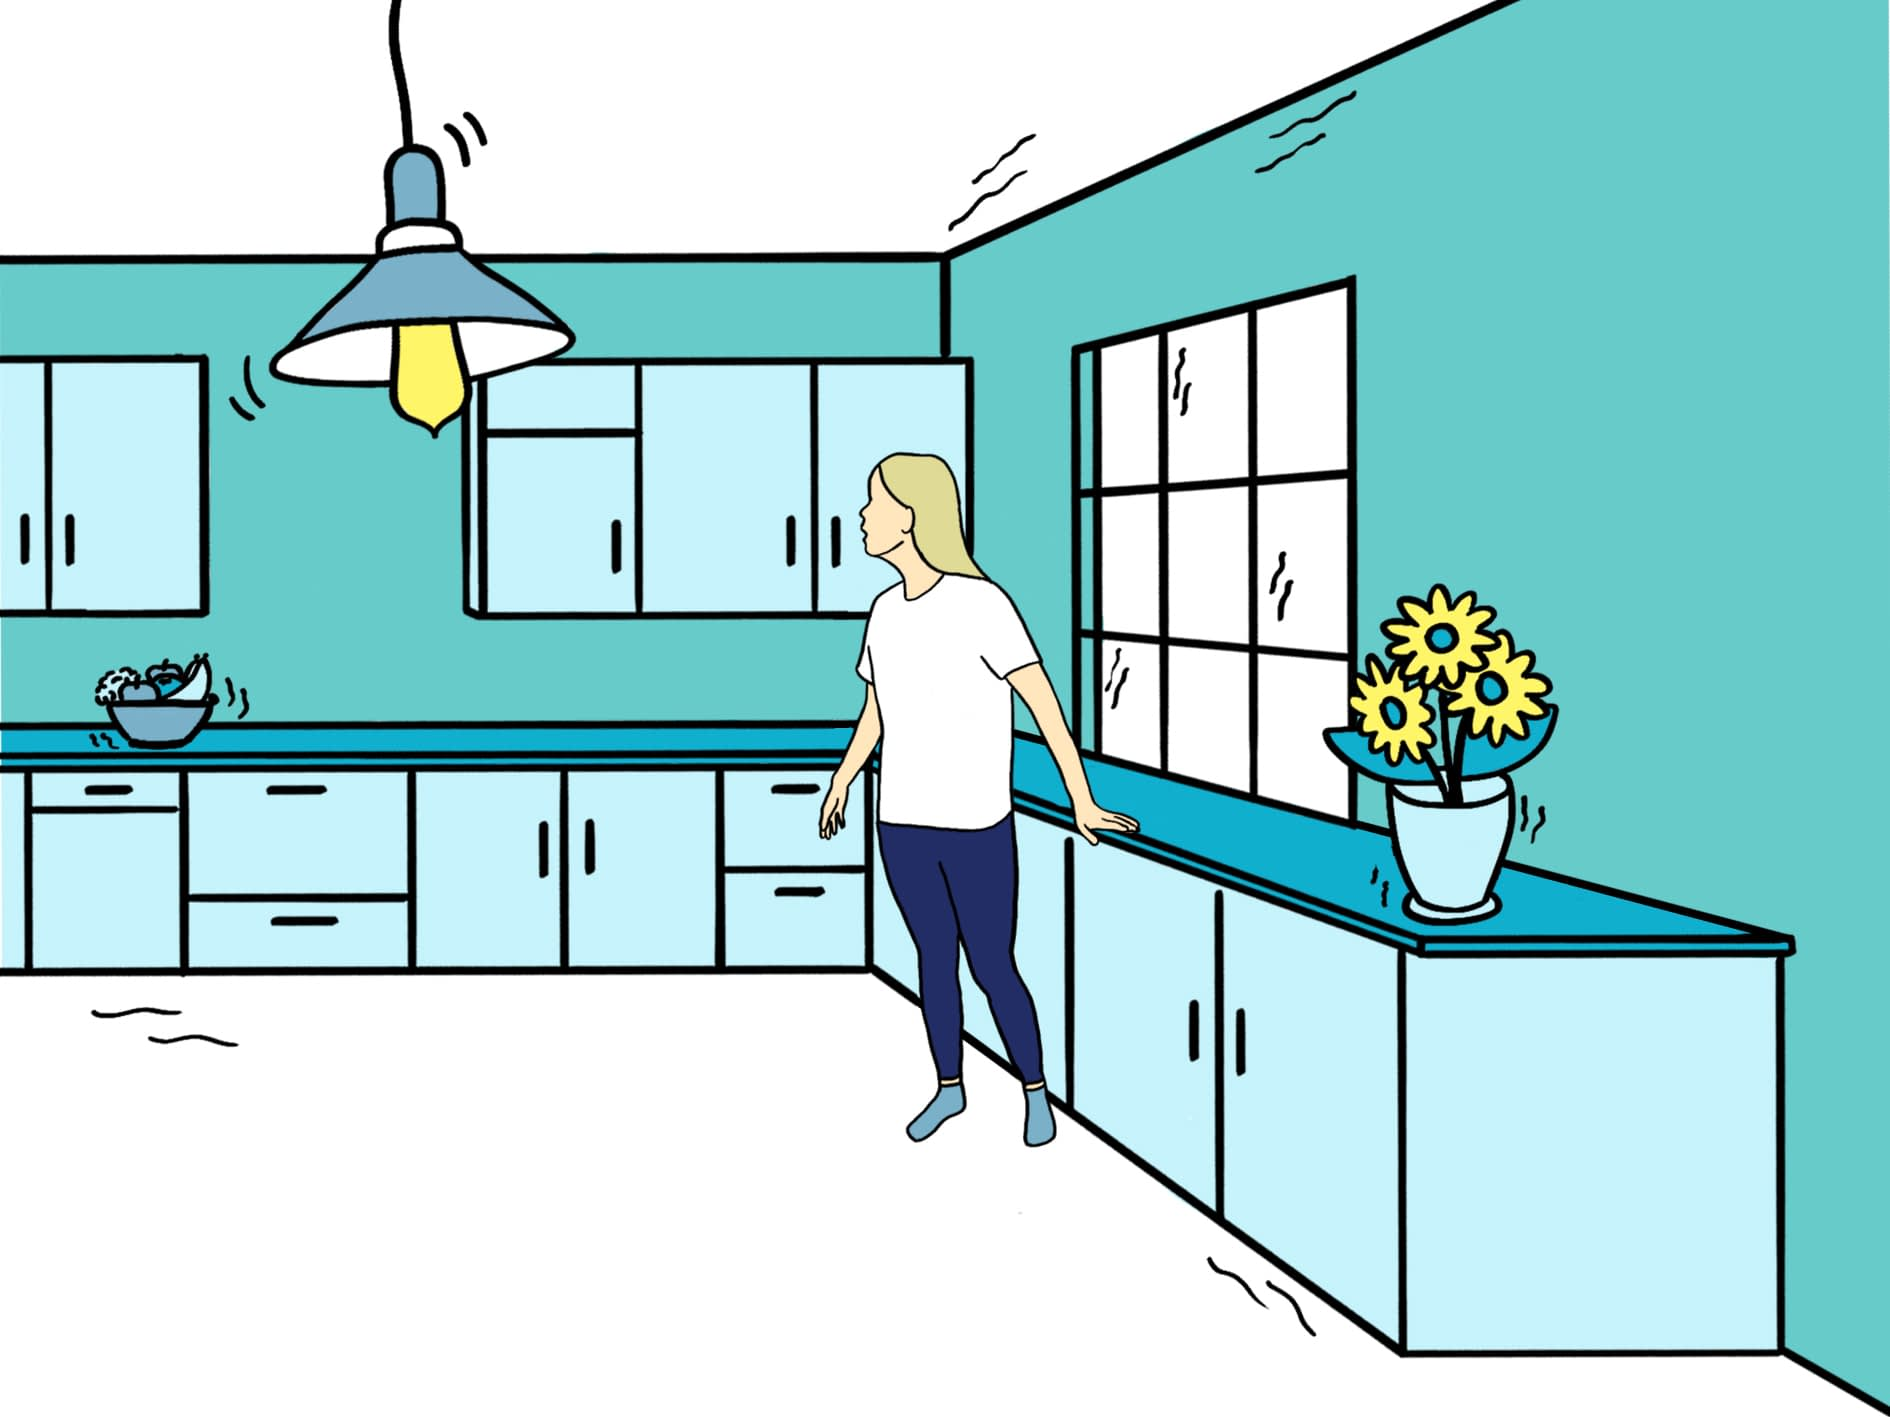 Light 4 Generally noticed indoors, but not outside, as a moderate vibration or jolt. Light sleepers may be awakened. Walls may creak, and glassware, crockery, doors or windows rattle.